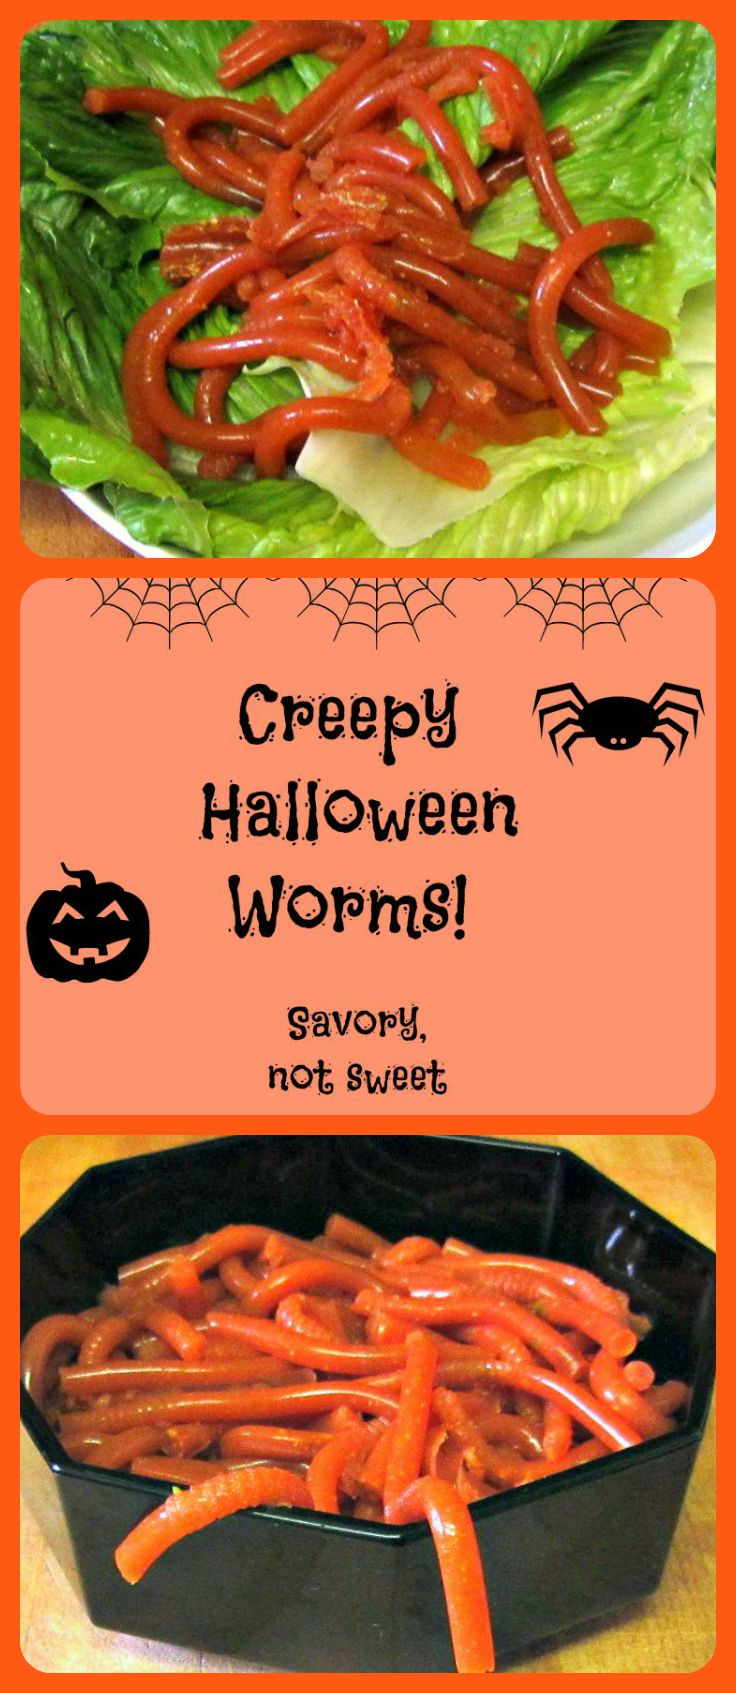 Slithery Savory worms for a creepy Halloween treat (that isn't sweet!)